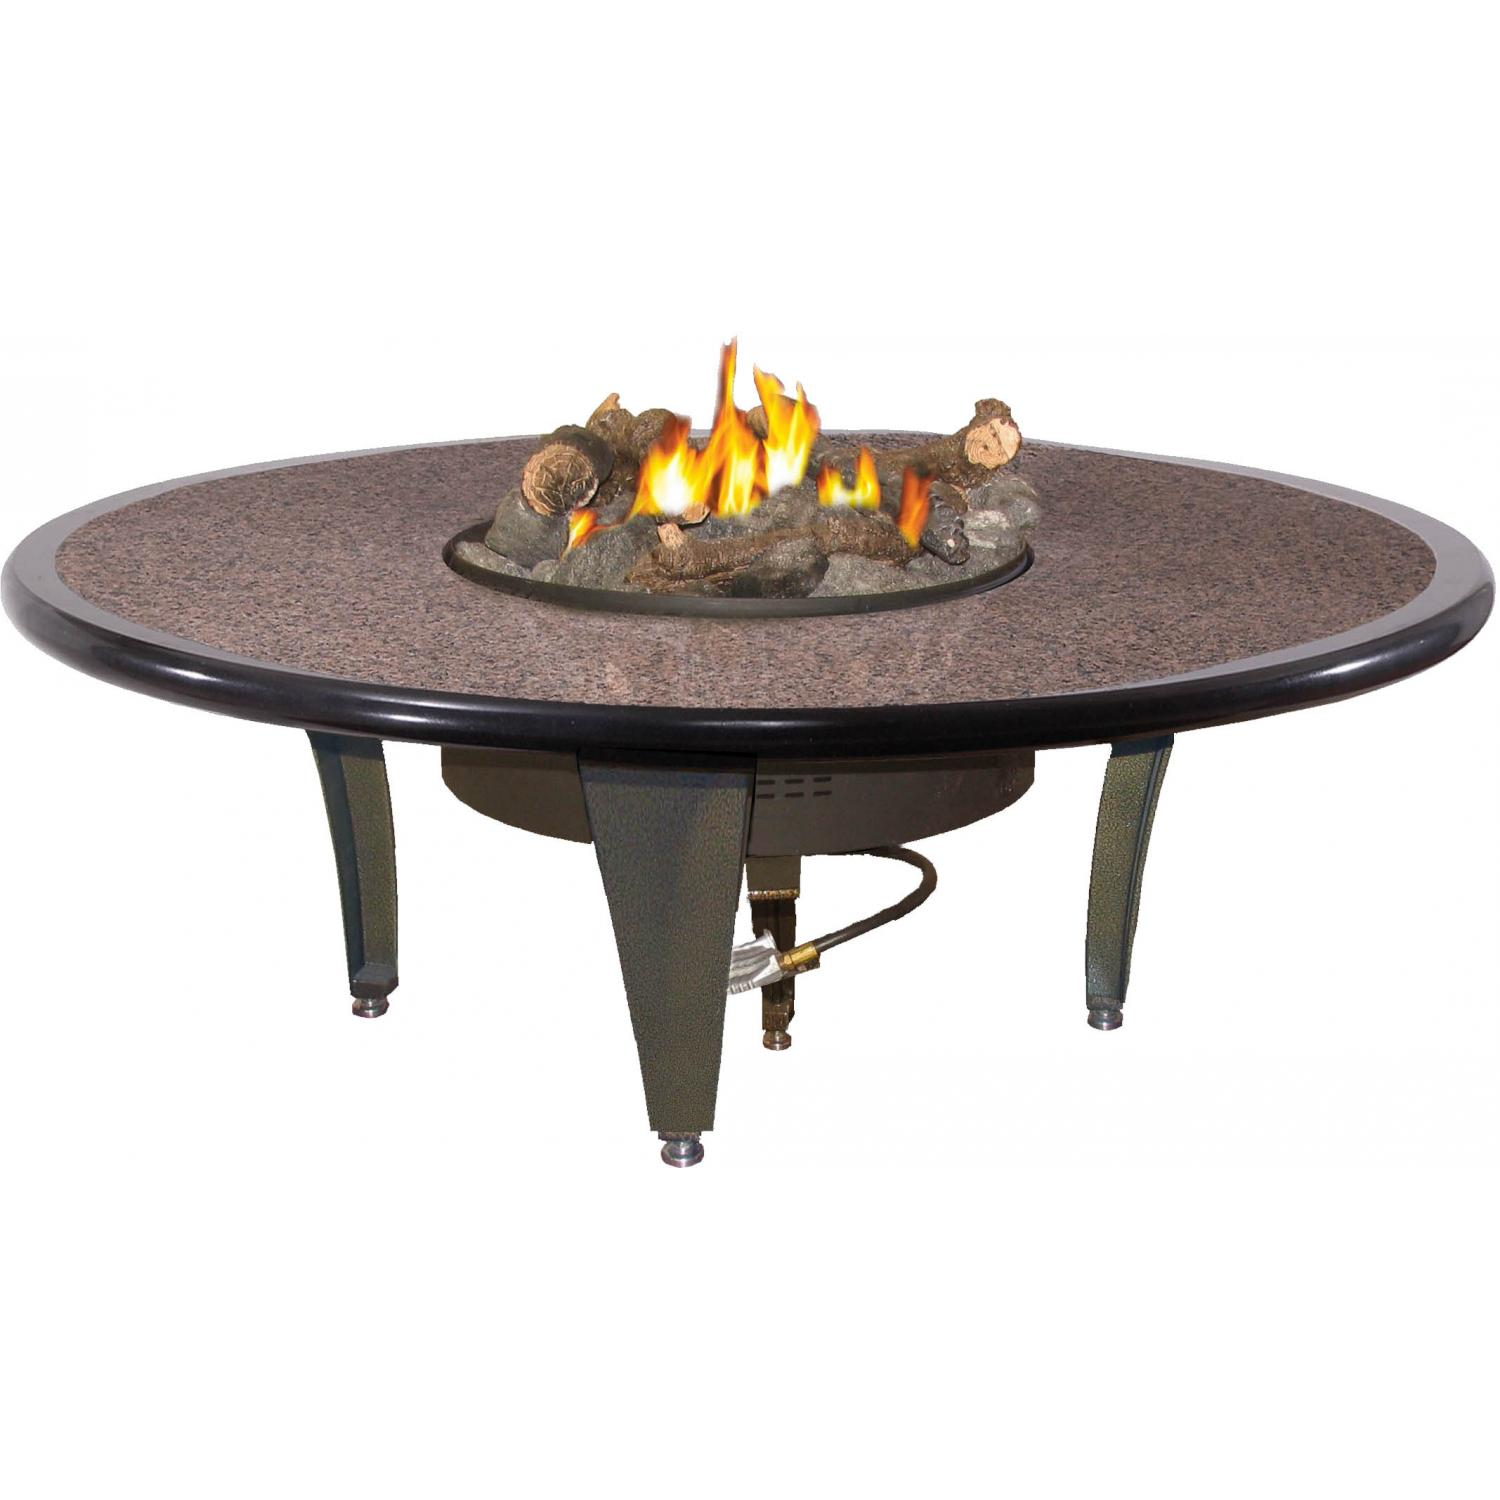 peterson outdoor campfyre inch natural gas electronic off grill side table remote granite fire pit small accent chairs high top set patio dining sets clearance cherry occasional